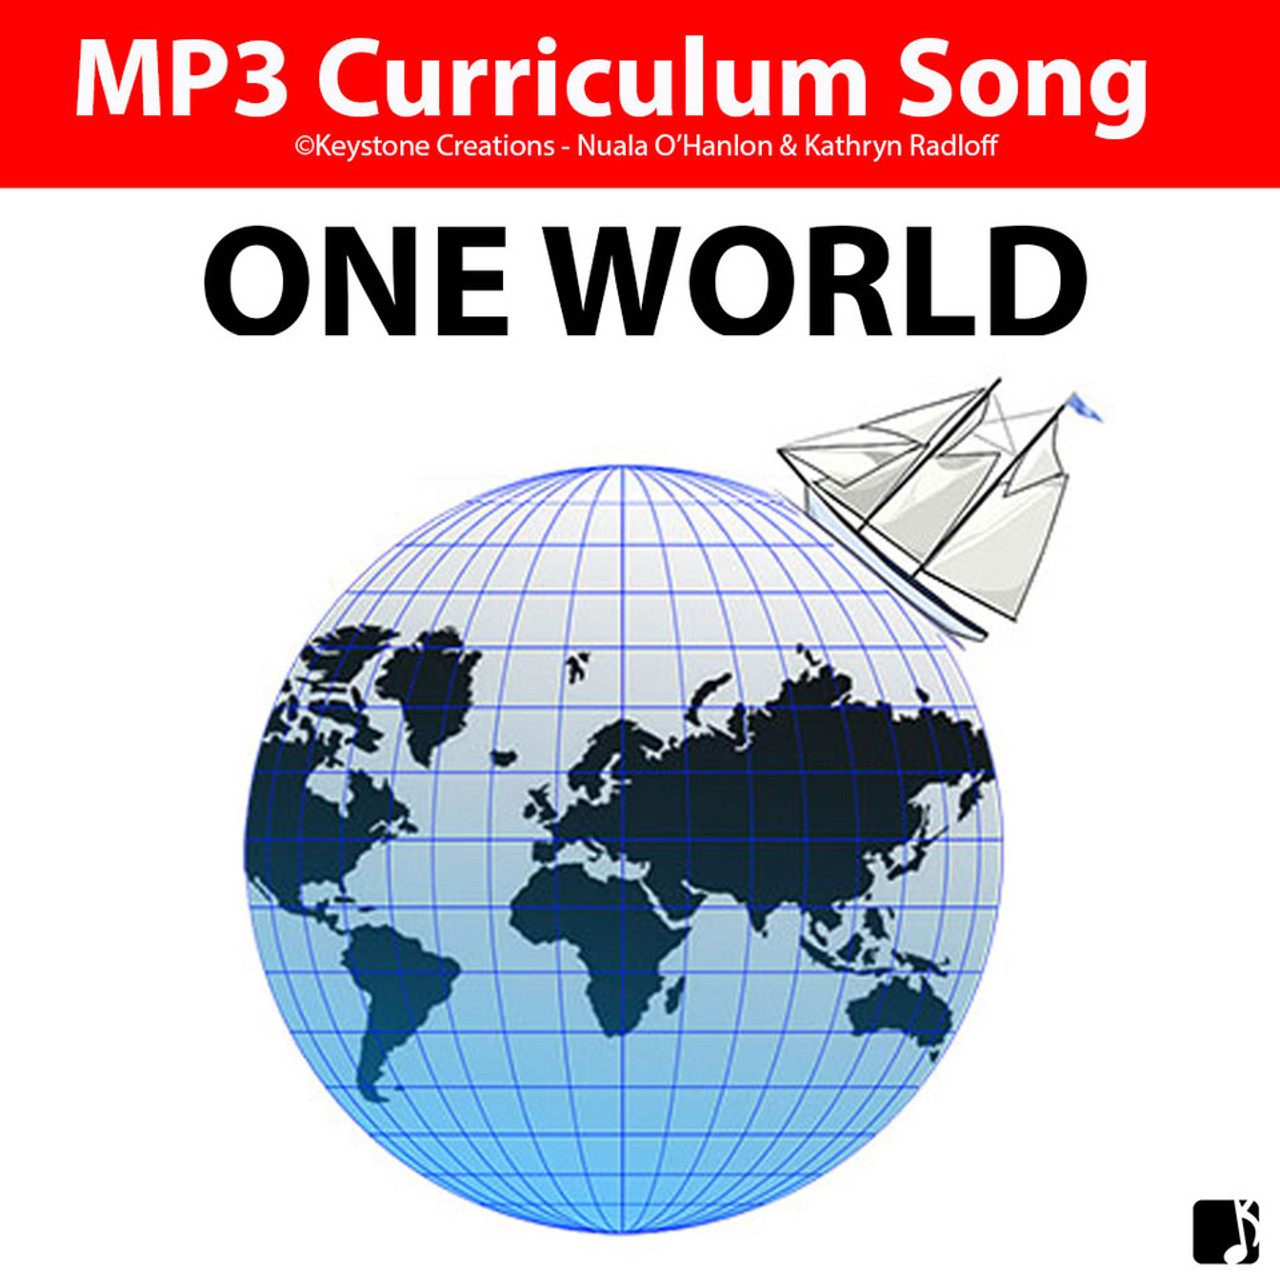 'ONE WORLD' (Grades K-7) ~ Curriculum Song MP3 & Lesson Materials